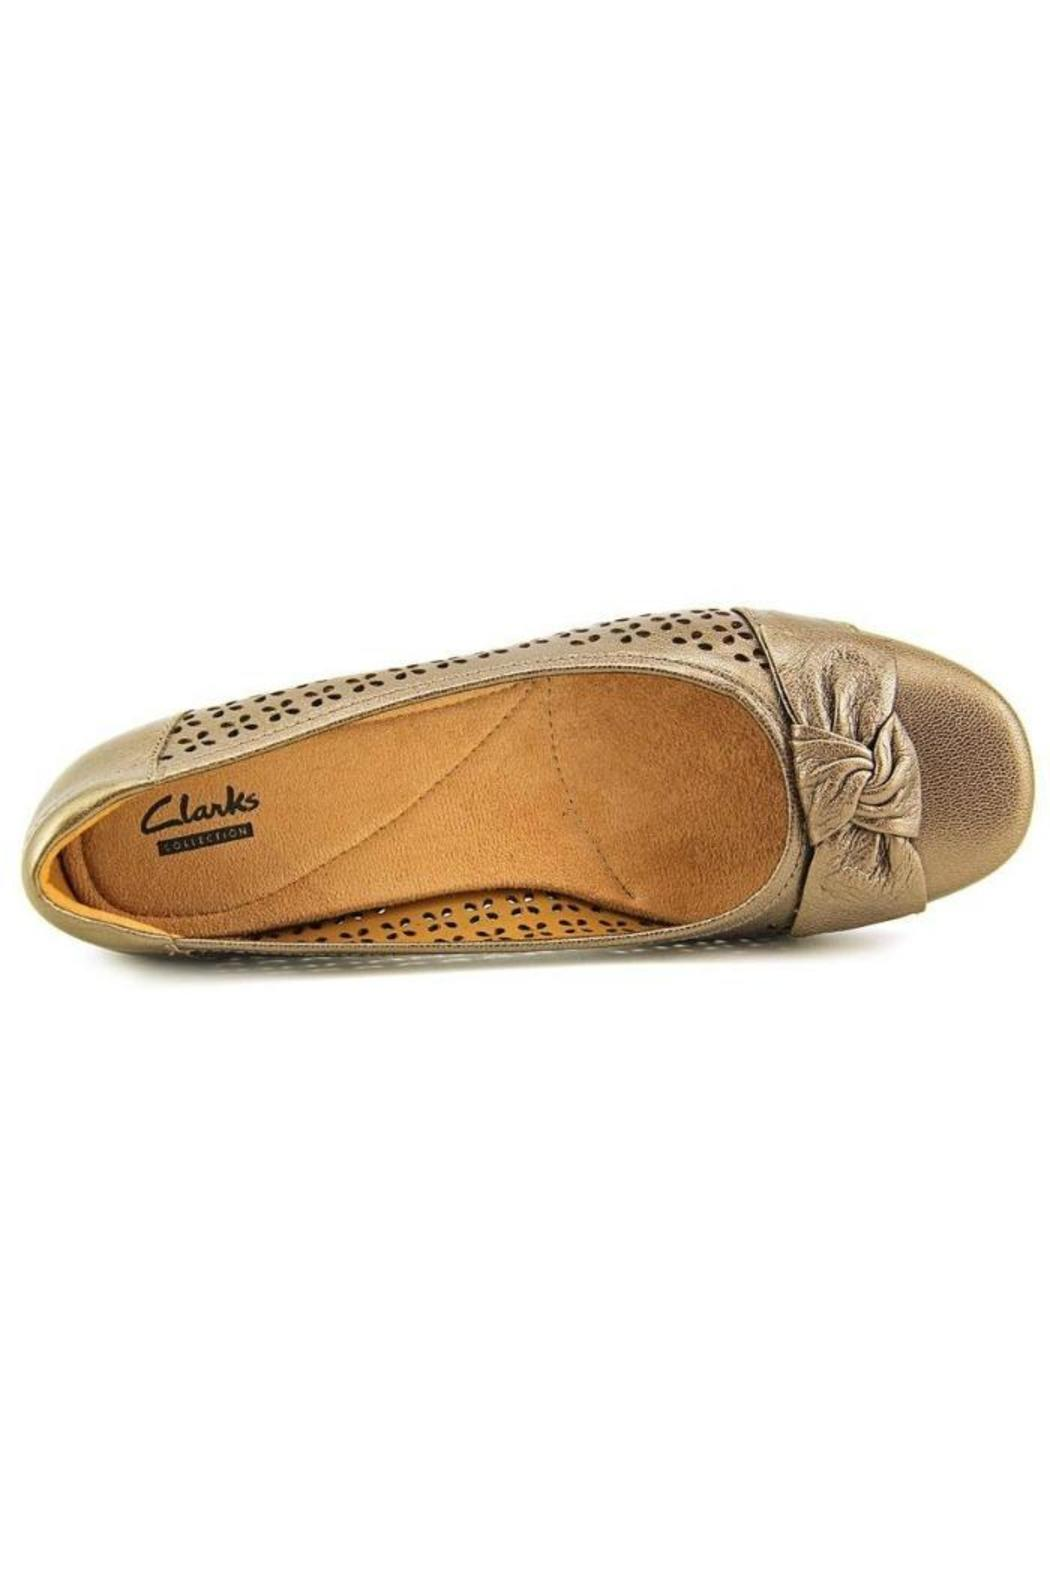 68443c89a055 Clarks propose band flat from cleveland szabo shoes shoptiques jpg  1050x1575 Clarks band